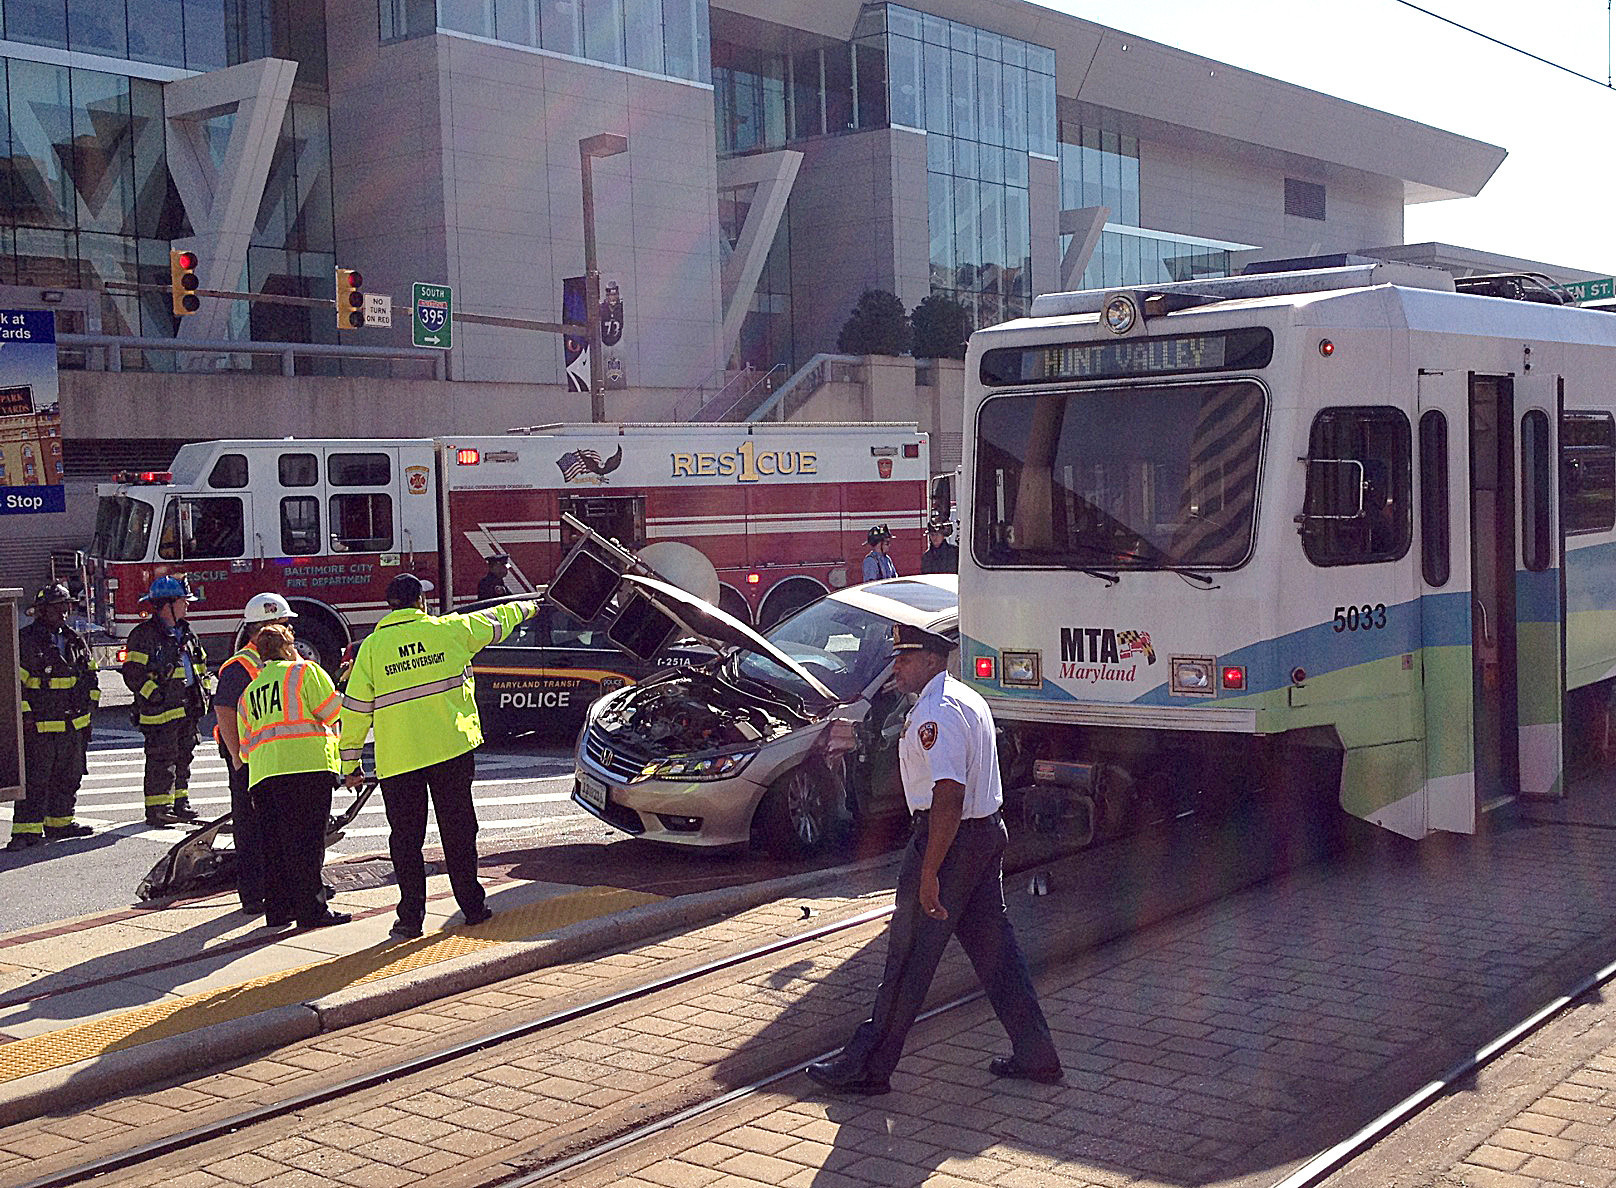 Passengers trapped after car collides with Light Rail train